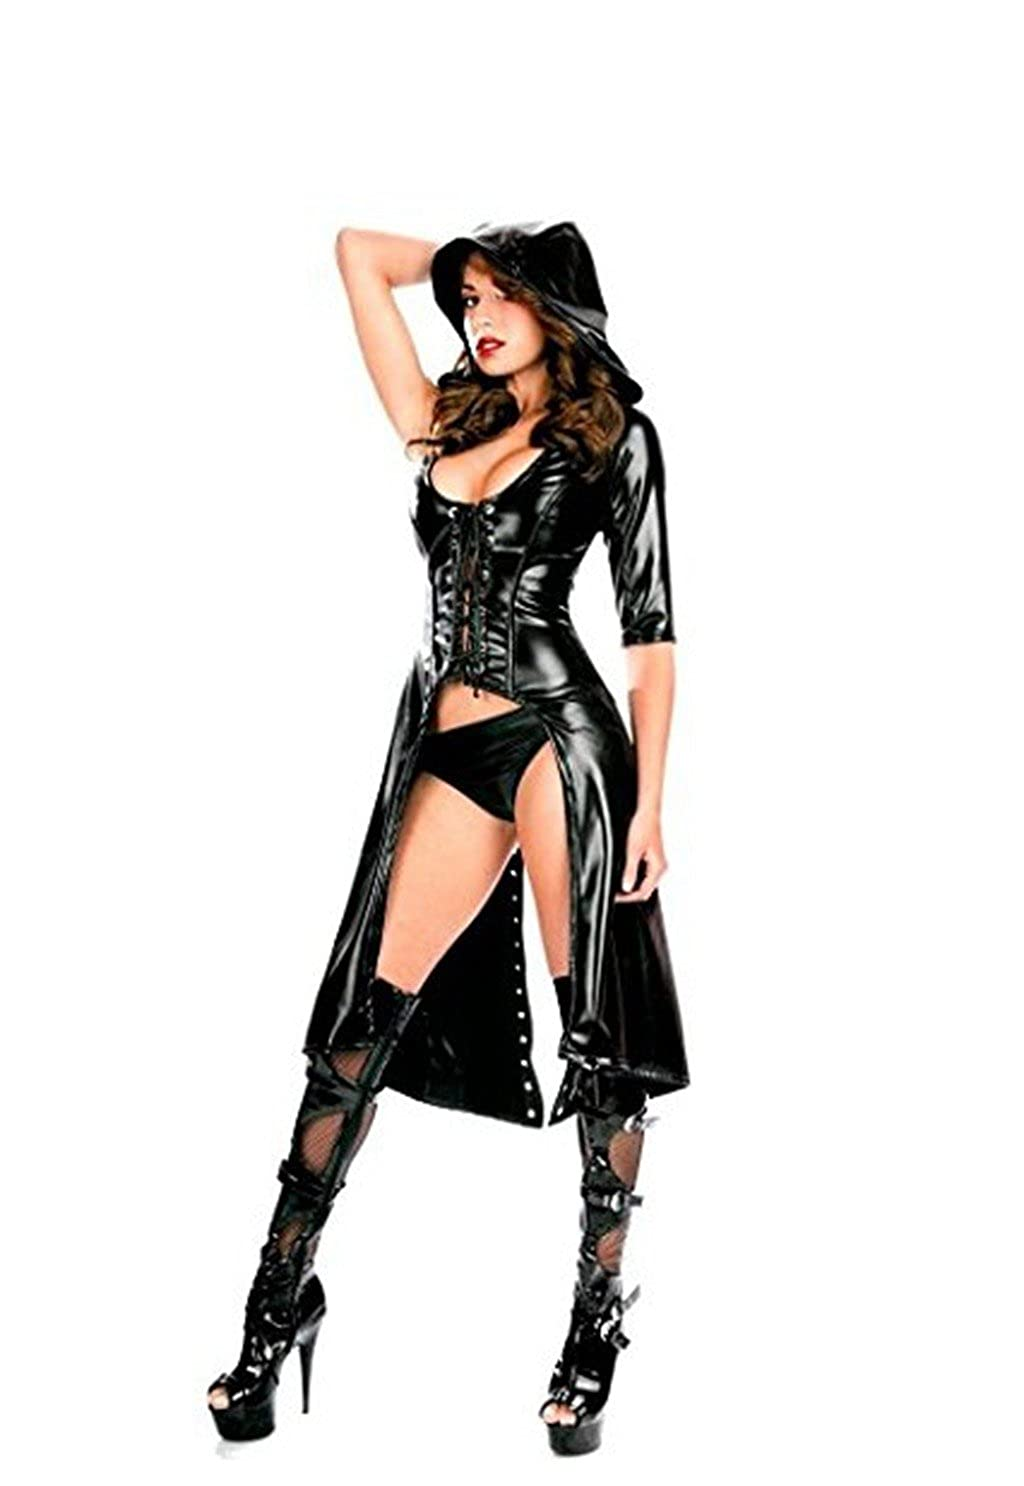 4570f700f Amazon.com  Freebily Women s Patent Leather Hooded Lace Up Cosplay Catsuit  Bodysuit Clubwear Lingerie Set Black  Clothing